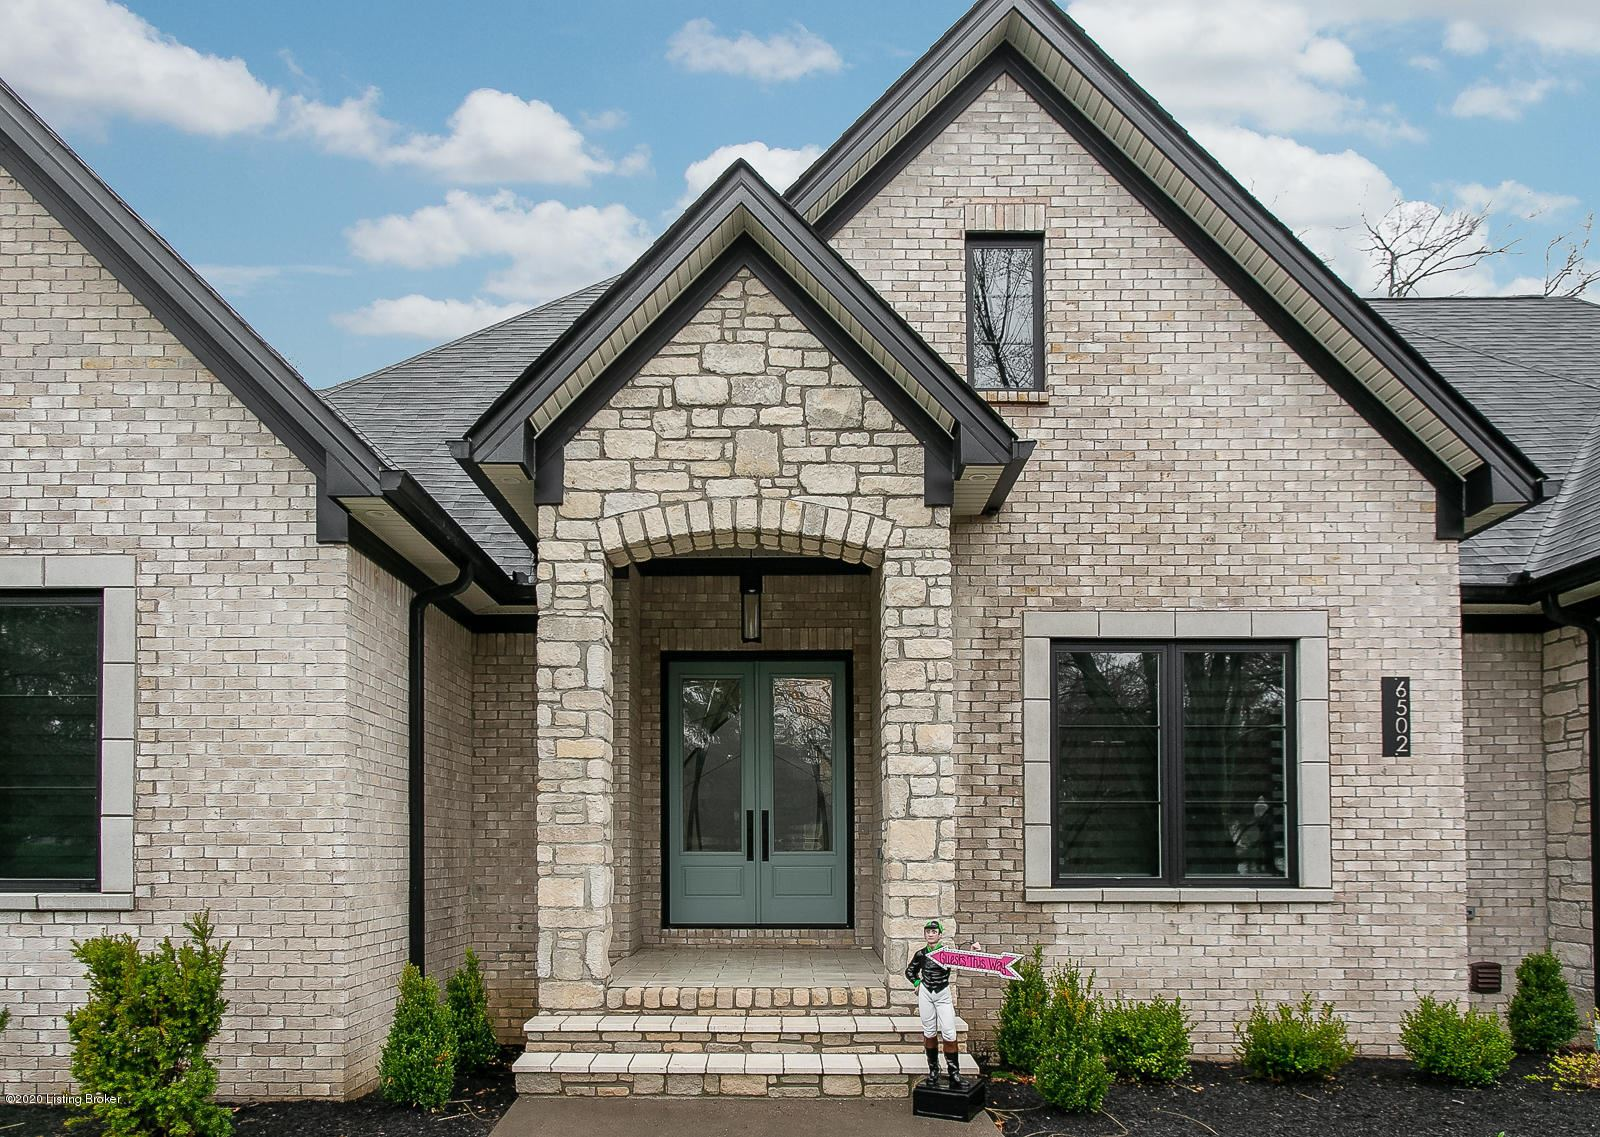 Property Image Of 6502 Sedgwicke Dr In Prospect, Ky